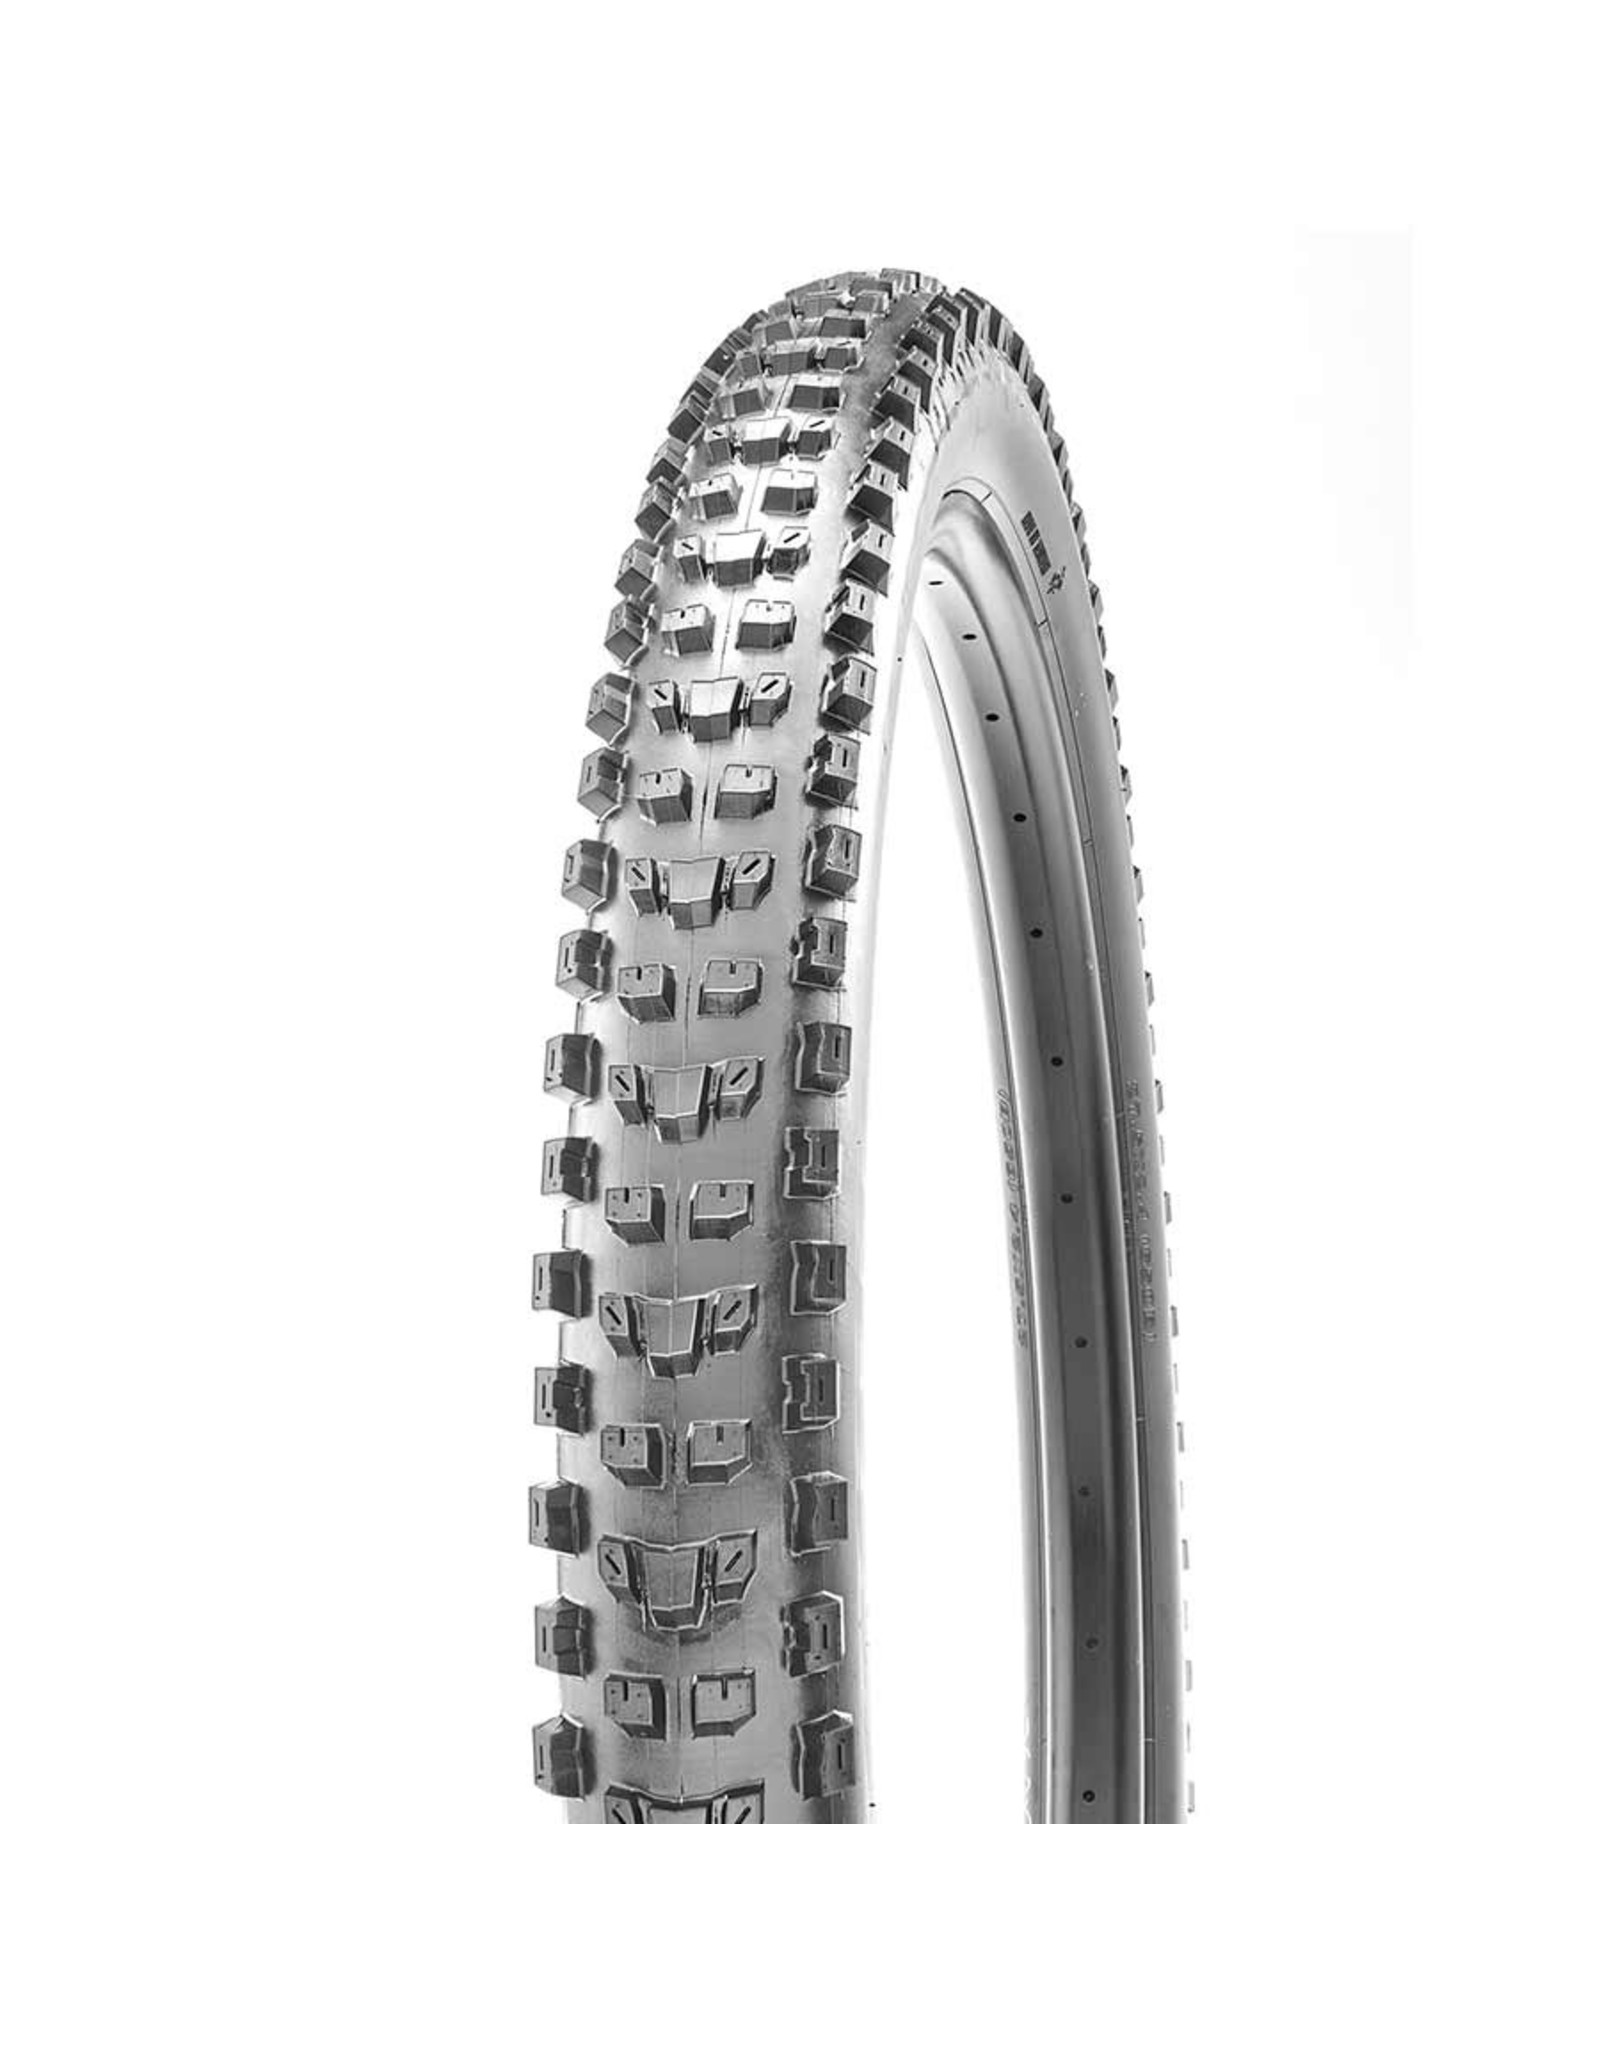 Maxxis, Dissector, Tire, 27.5''x2.40, Folding, Tubeless Ready, 3C Maxx Grip, 2-ply, Wide Trail, 60TPI, Black